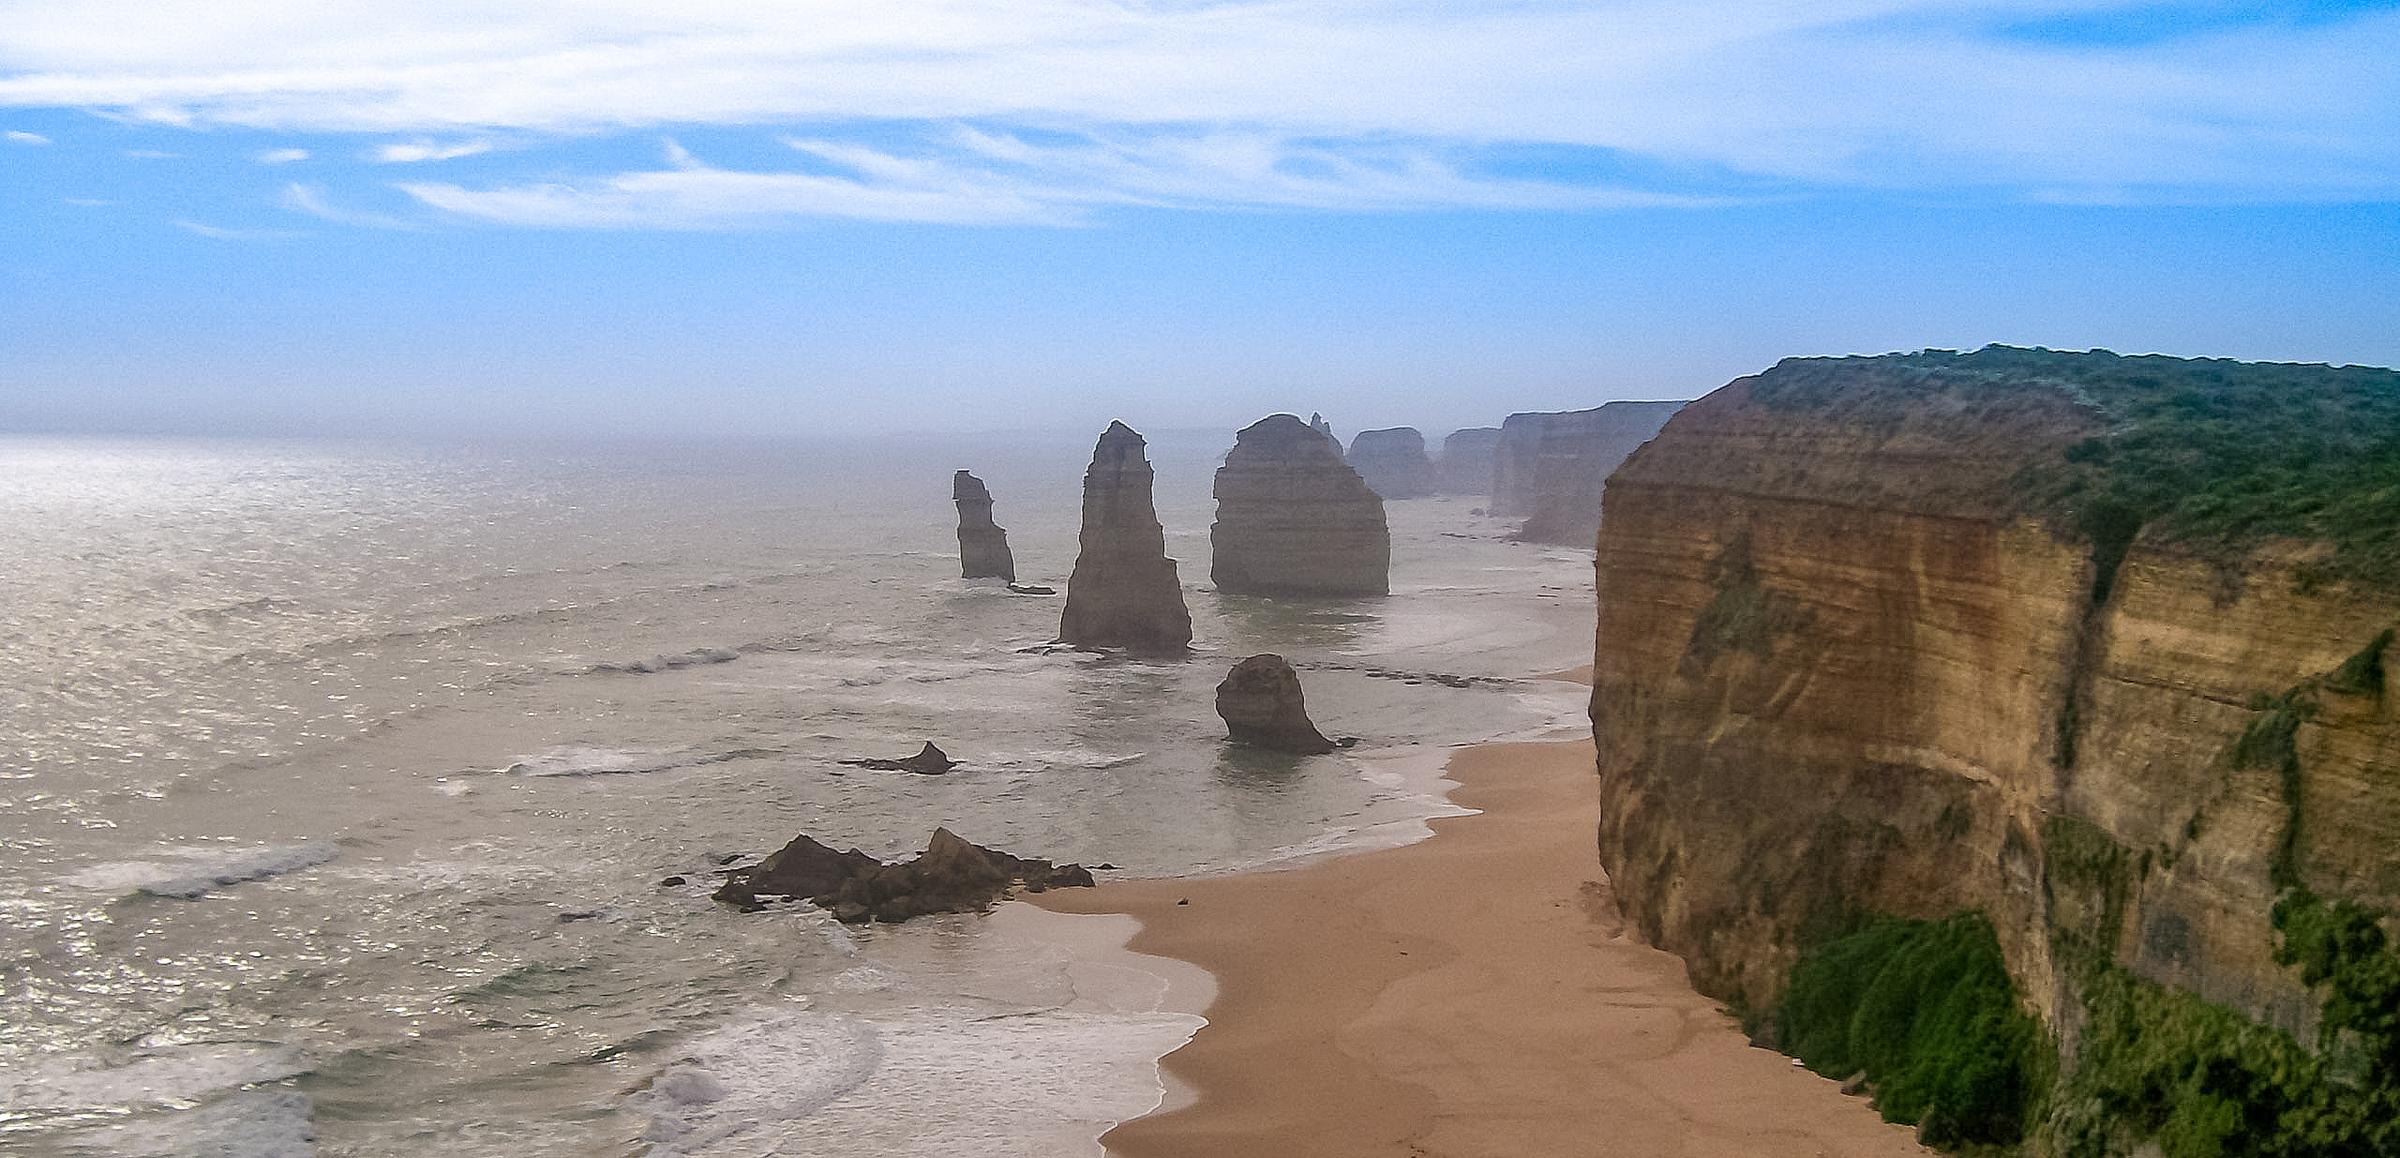 From my previous trip to Melbourne, a view looking out over the cliffs on Great Ocean Road. Several spires rise out of the surf. There were once twelve, but over time, erosion has led several of them to collapse.